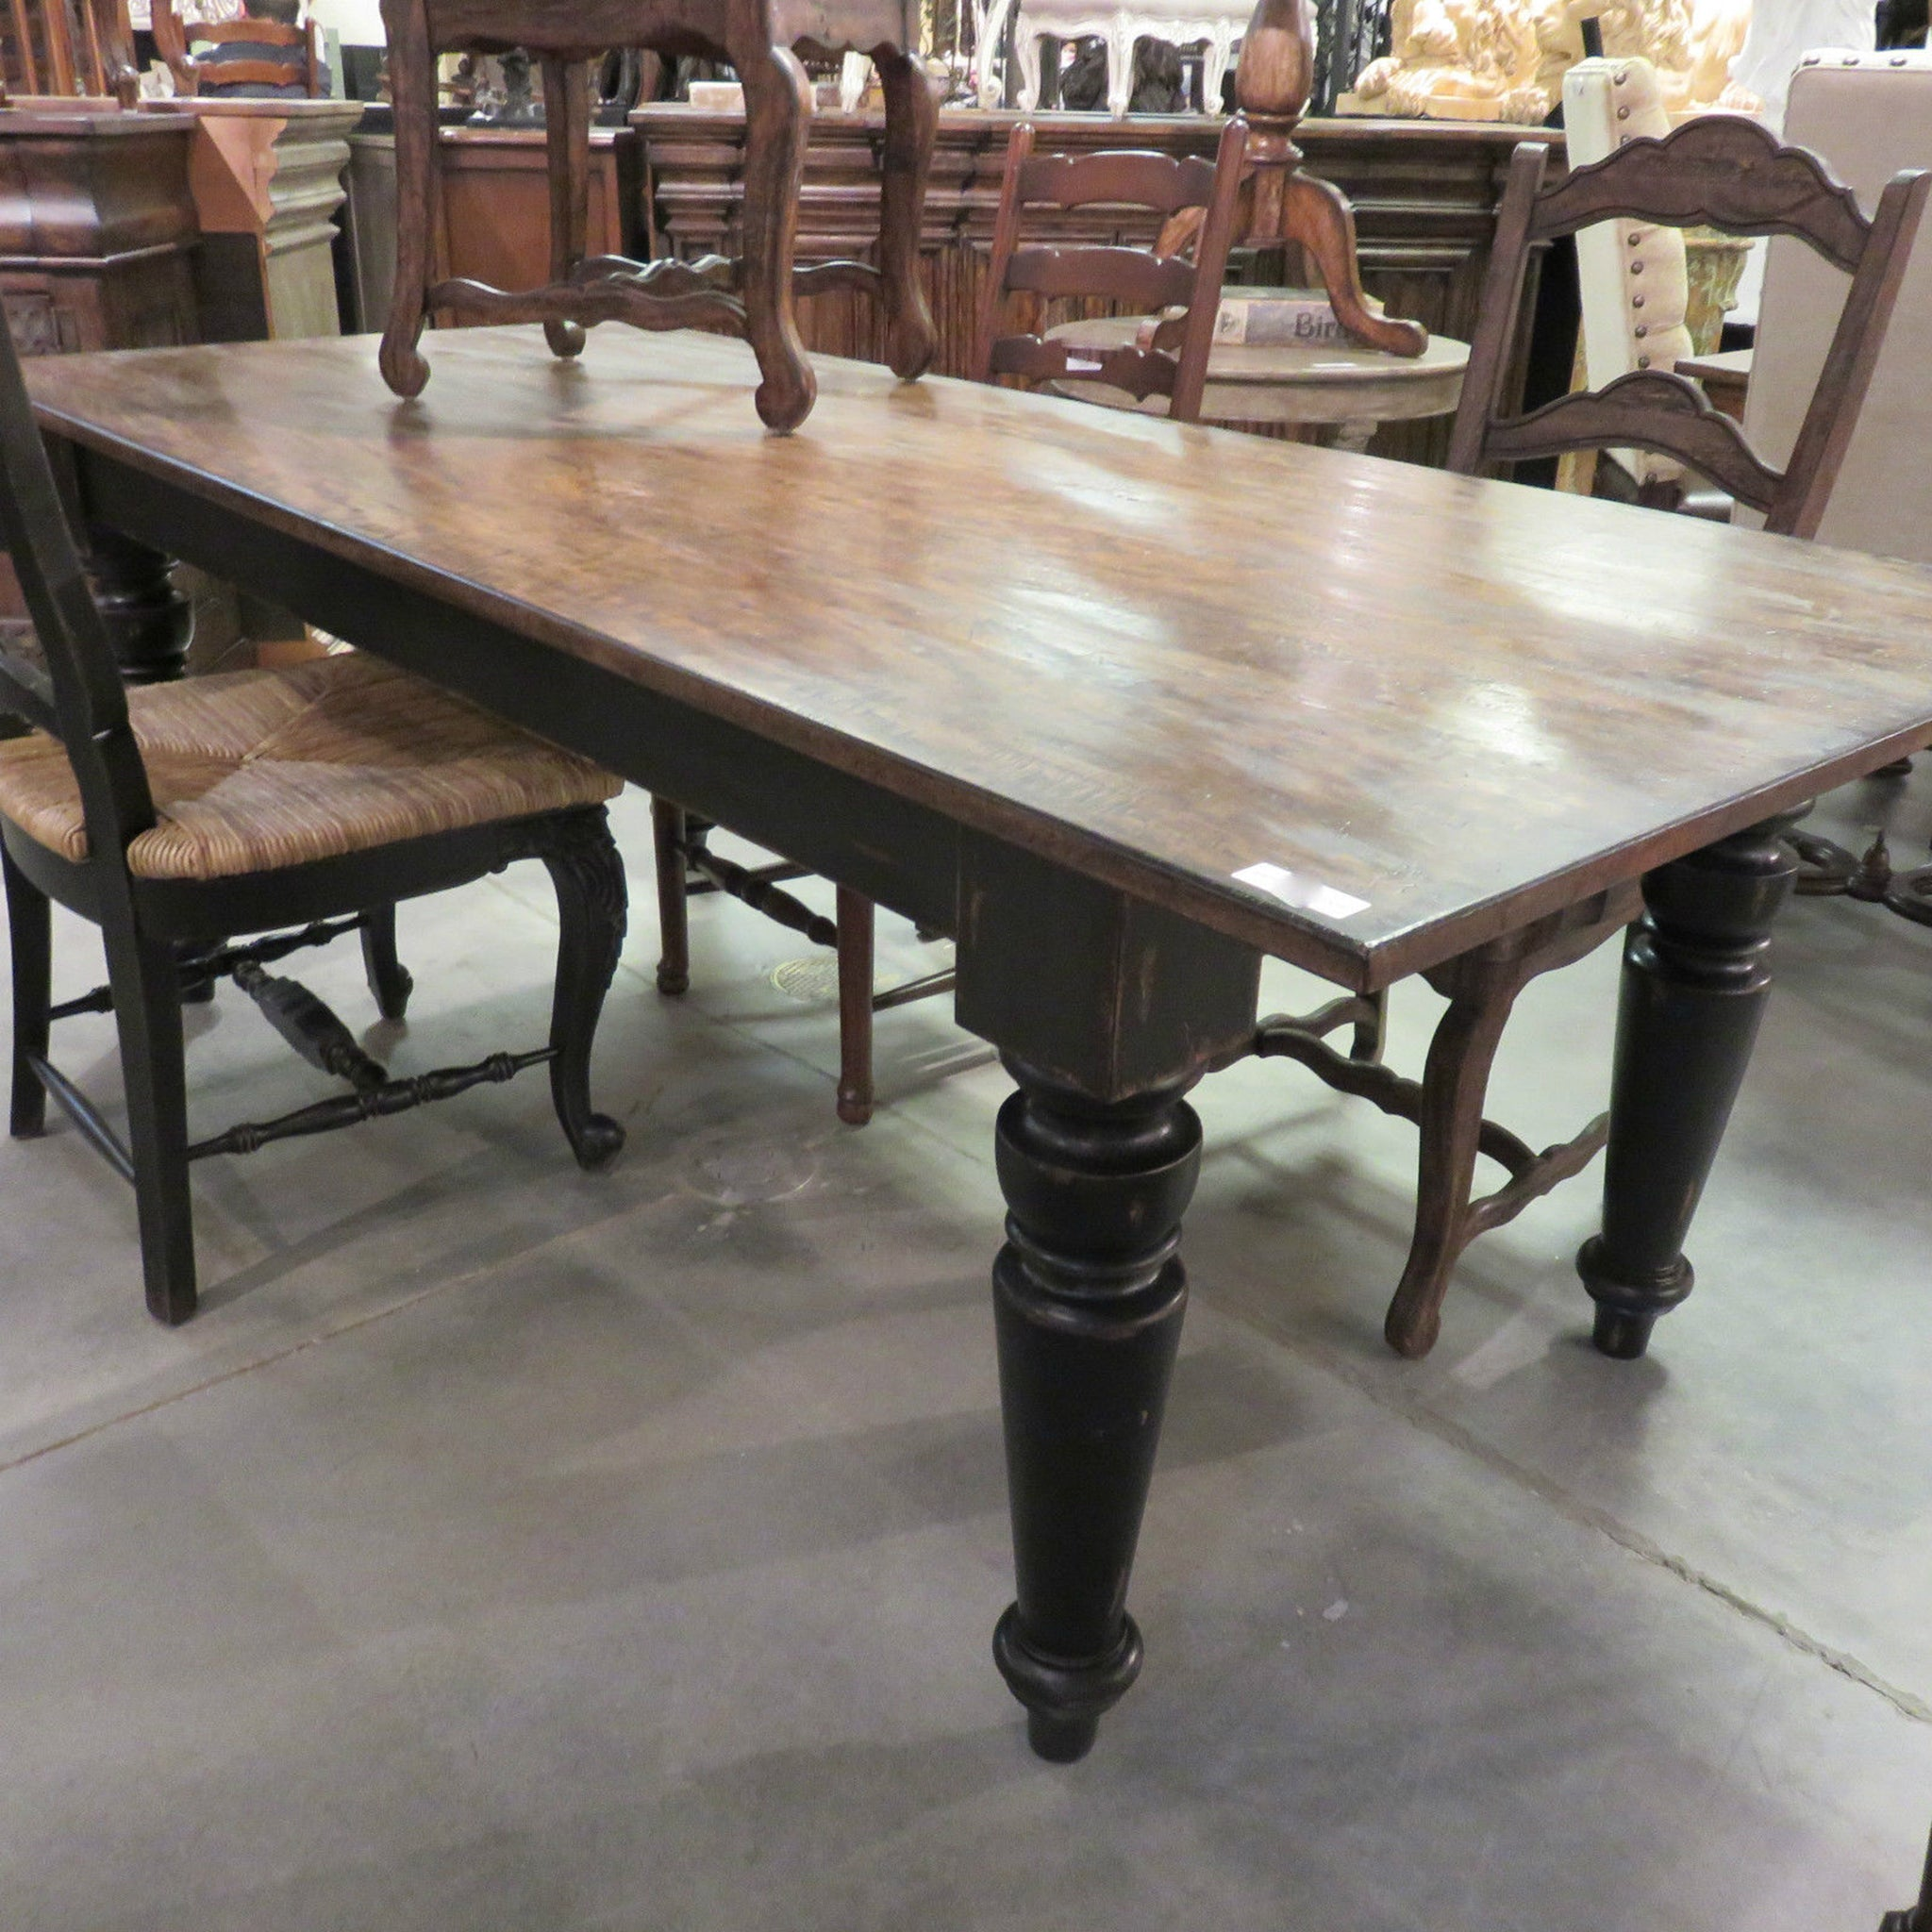 Picture of: Rustic Farmhouse Dining Table 84 Black Distressed Reclaimed Wood Top Furniture On Main